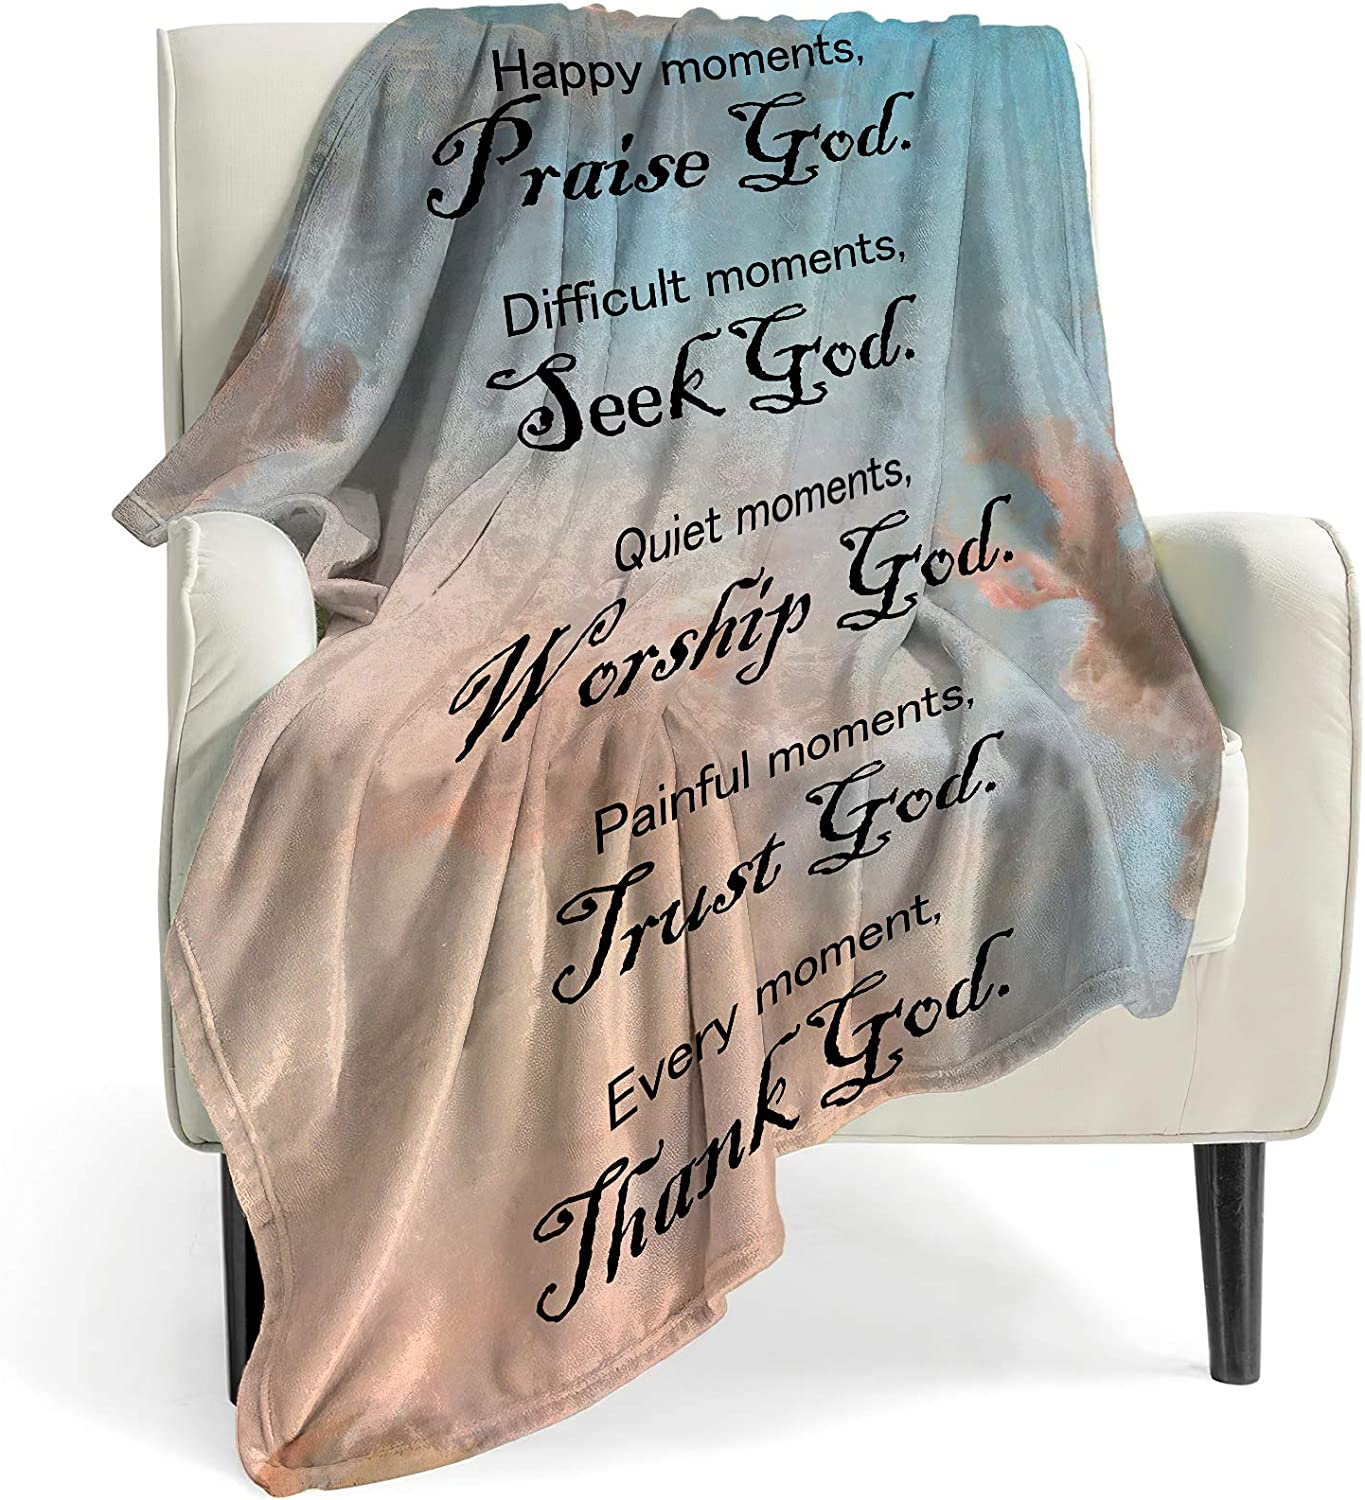 BOOPBEEP Healing Throw Blanket with Inspirational Thoughts and Prayers- Religious Soft Throw Blanket Inspirational Blankets and Throws 40x50 Inch Throw Blankets Perfect Caring Gift for Men & Women